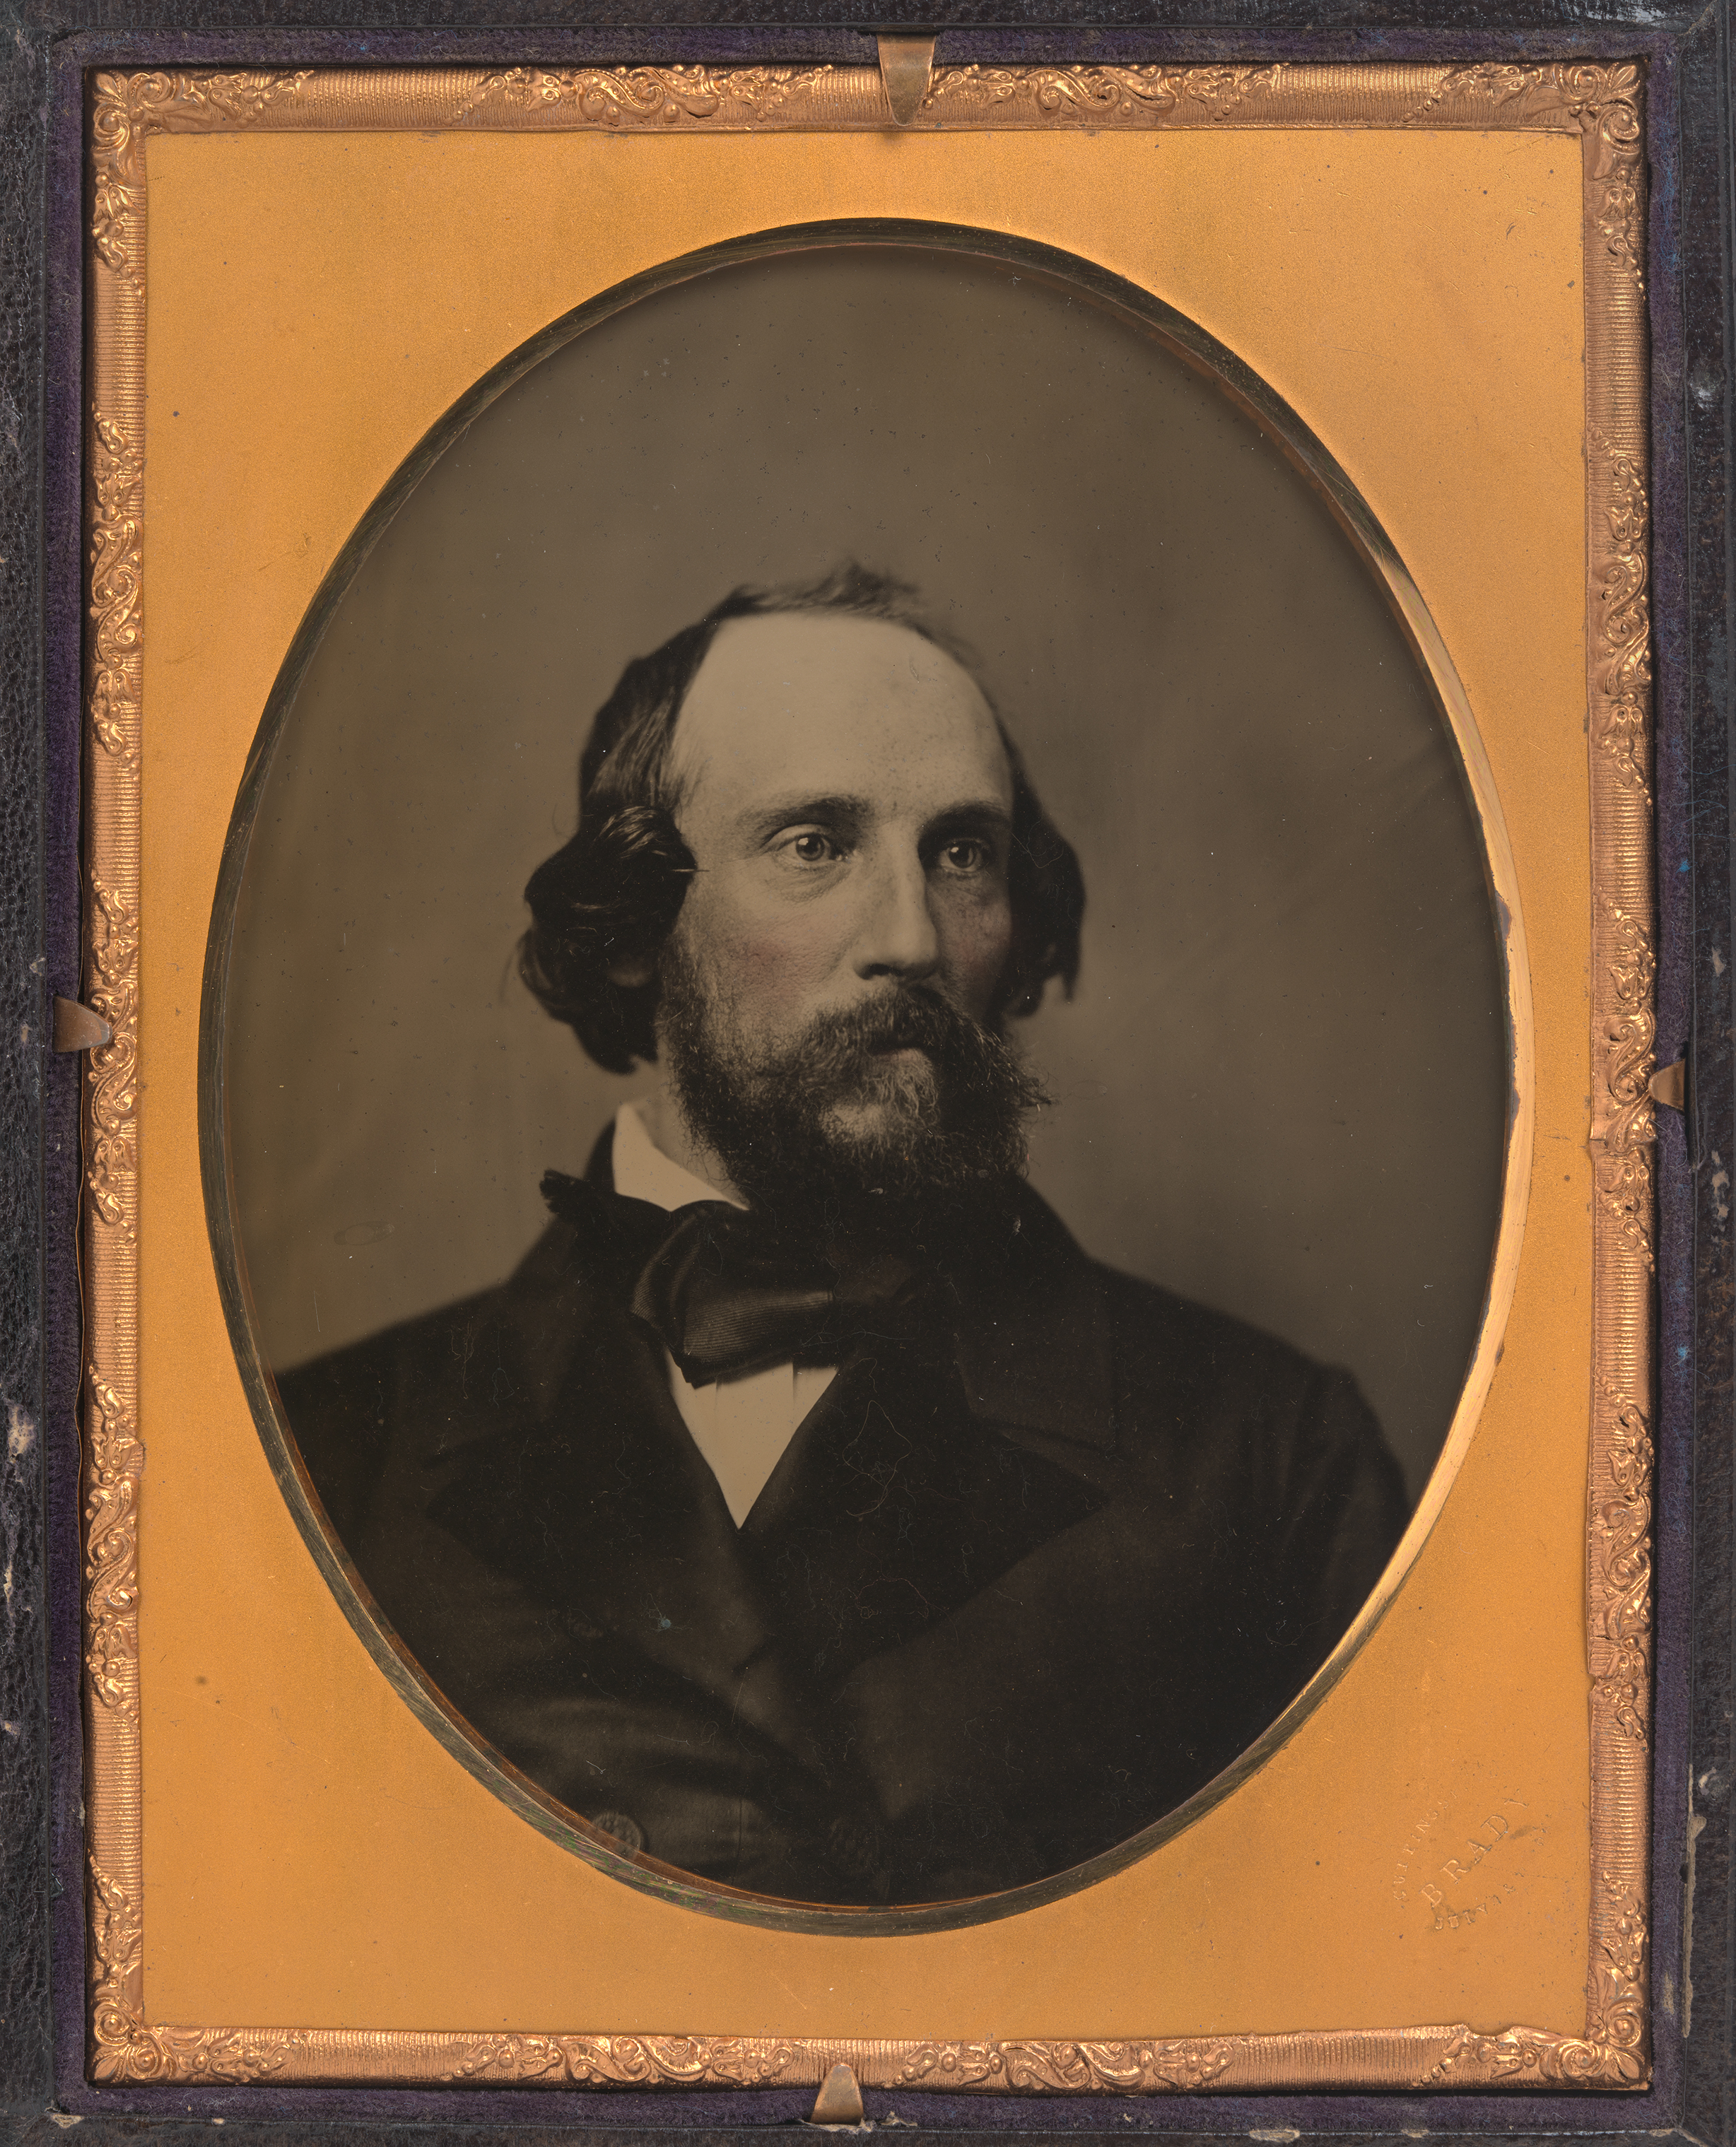 Frederick West Lander by Mathew B. Brady - What is an Ambrotype? - FilterGrade